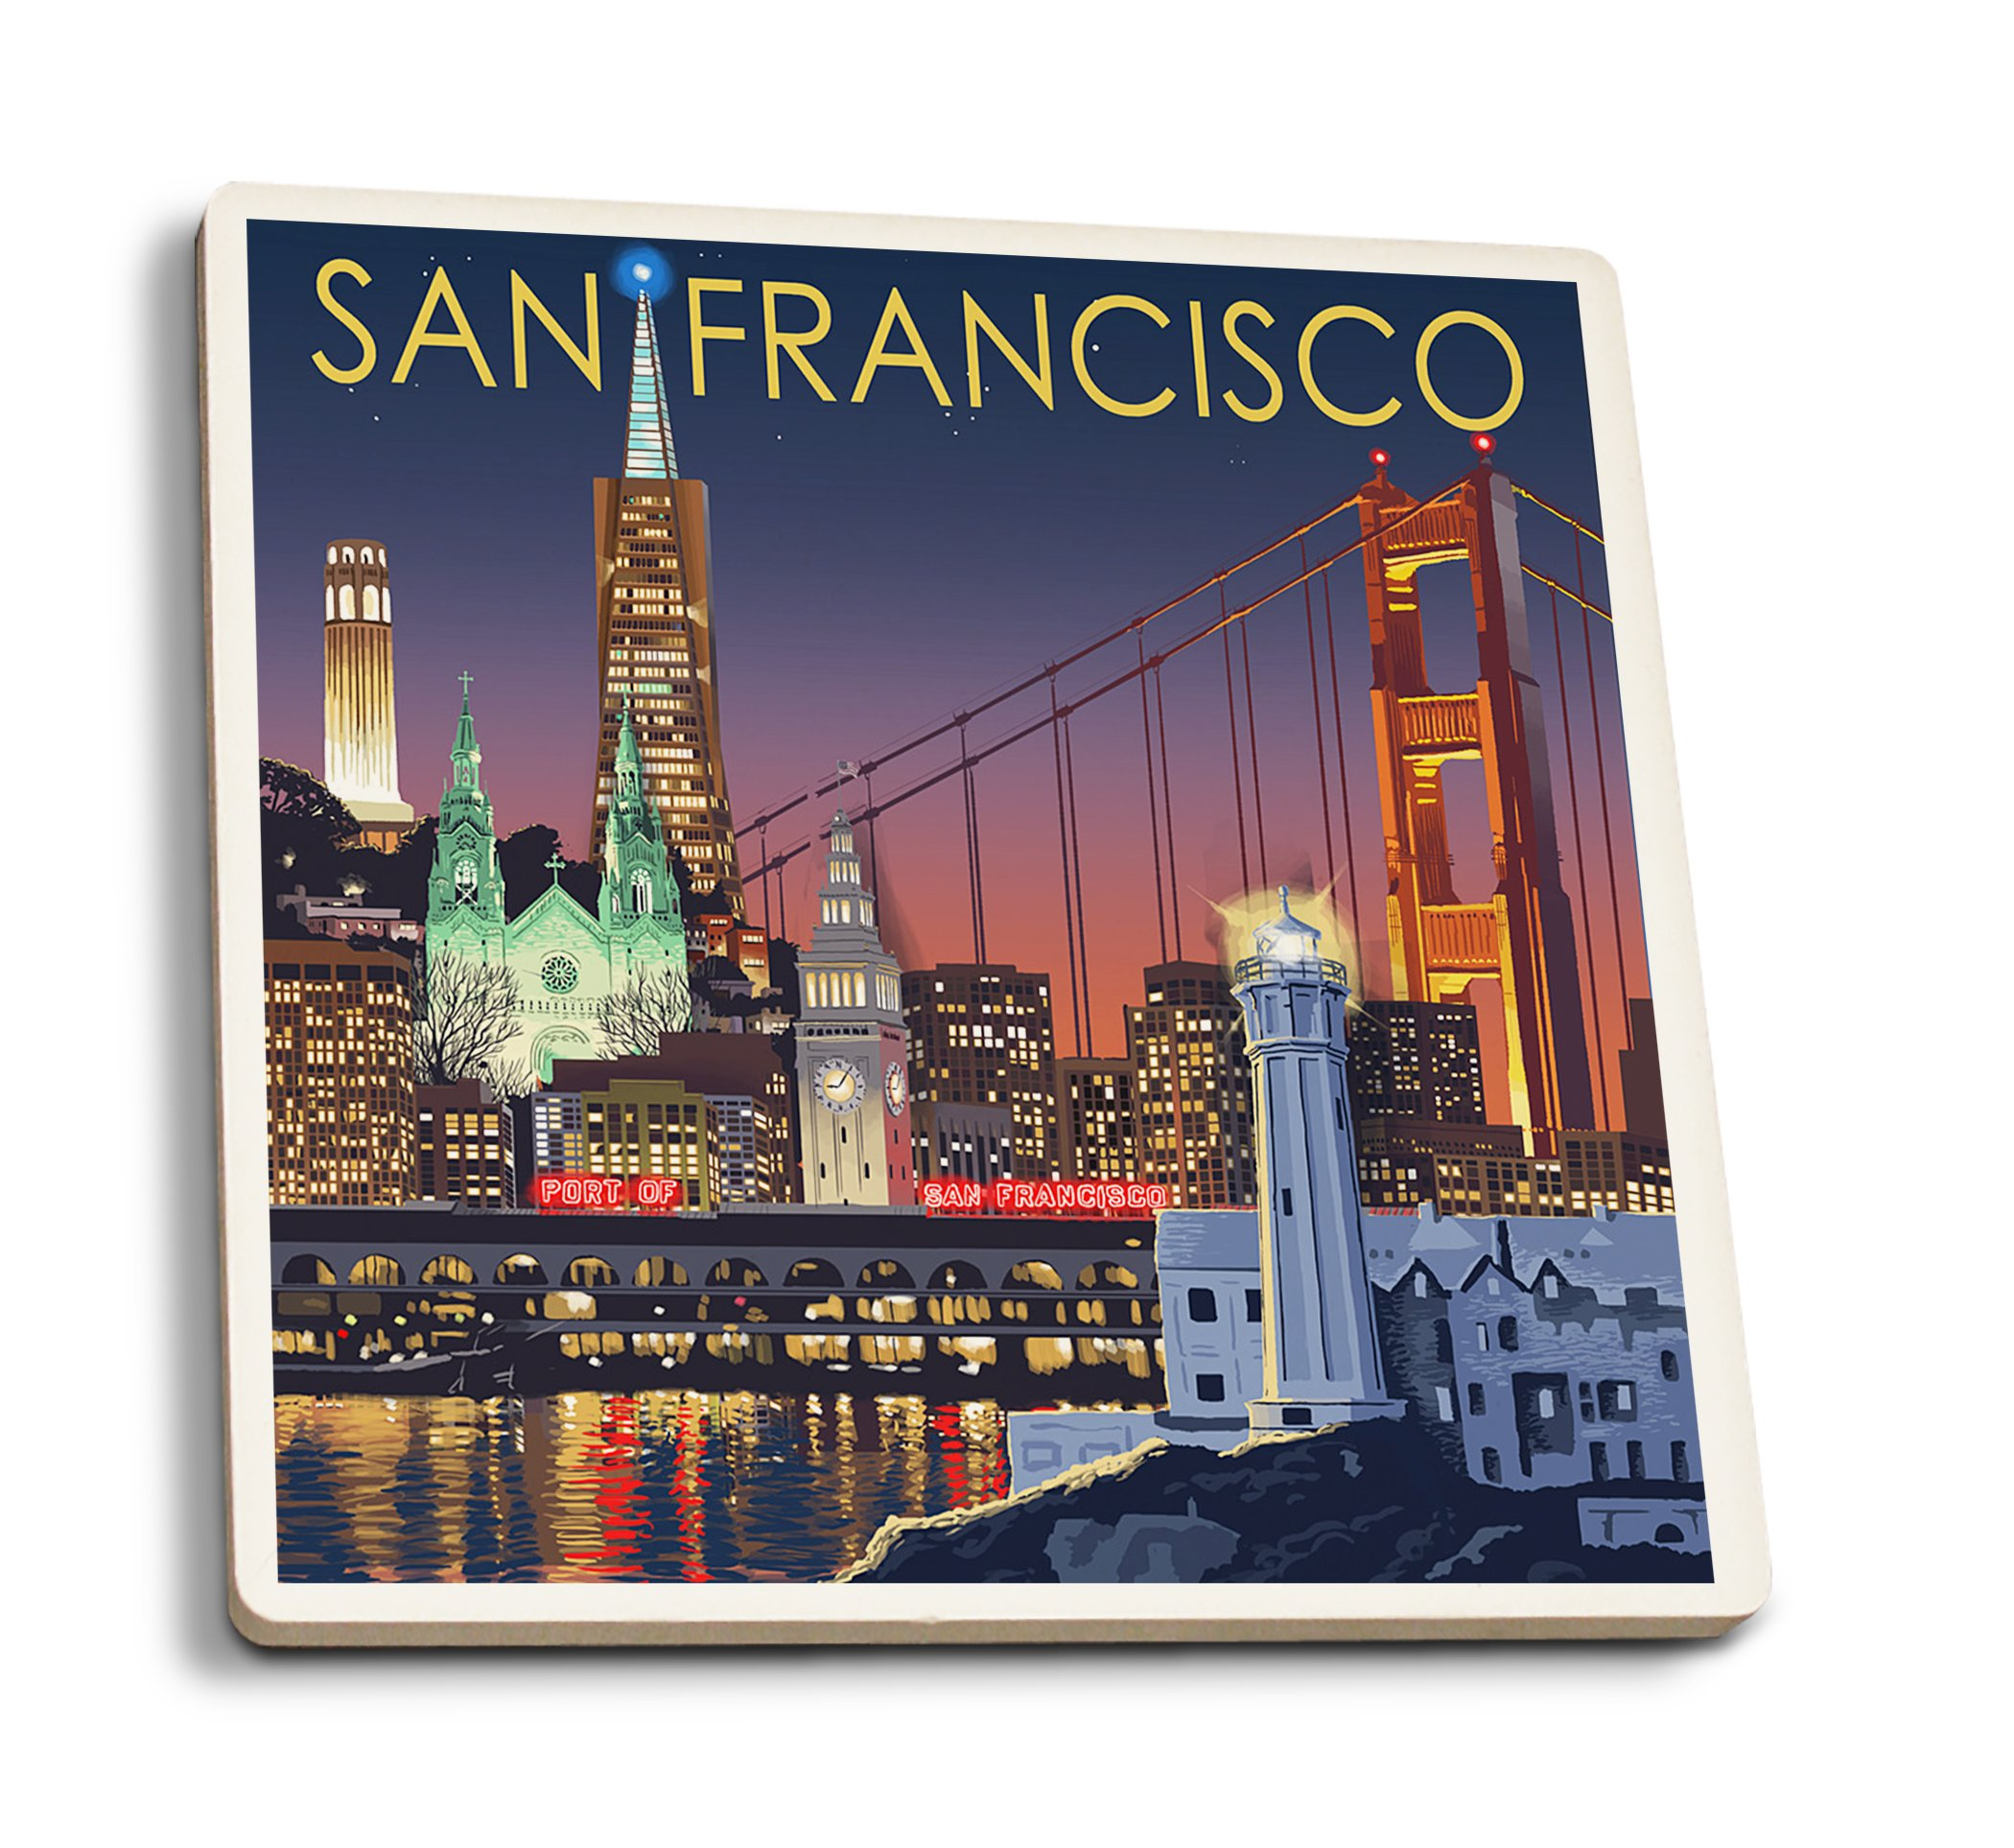 Lantern Press San Francisco, California - Skyline at Night (Set of 4 Ceramic Coasters - Cork-Backed, Absorbent)